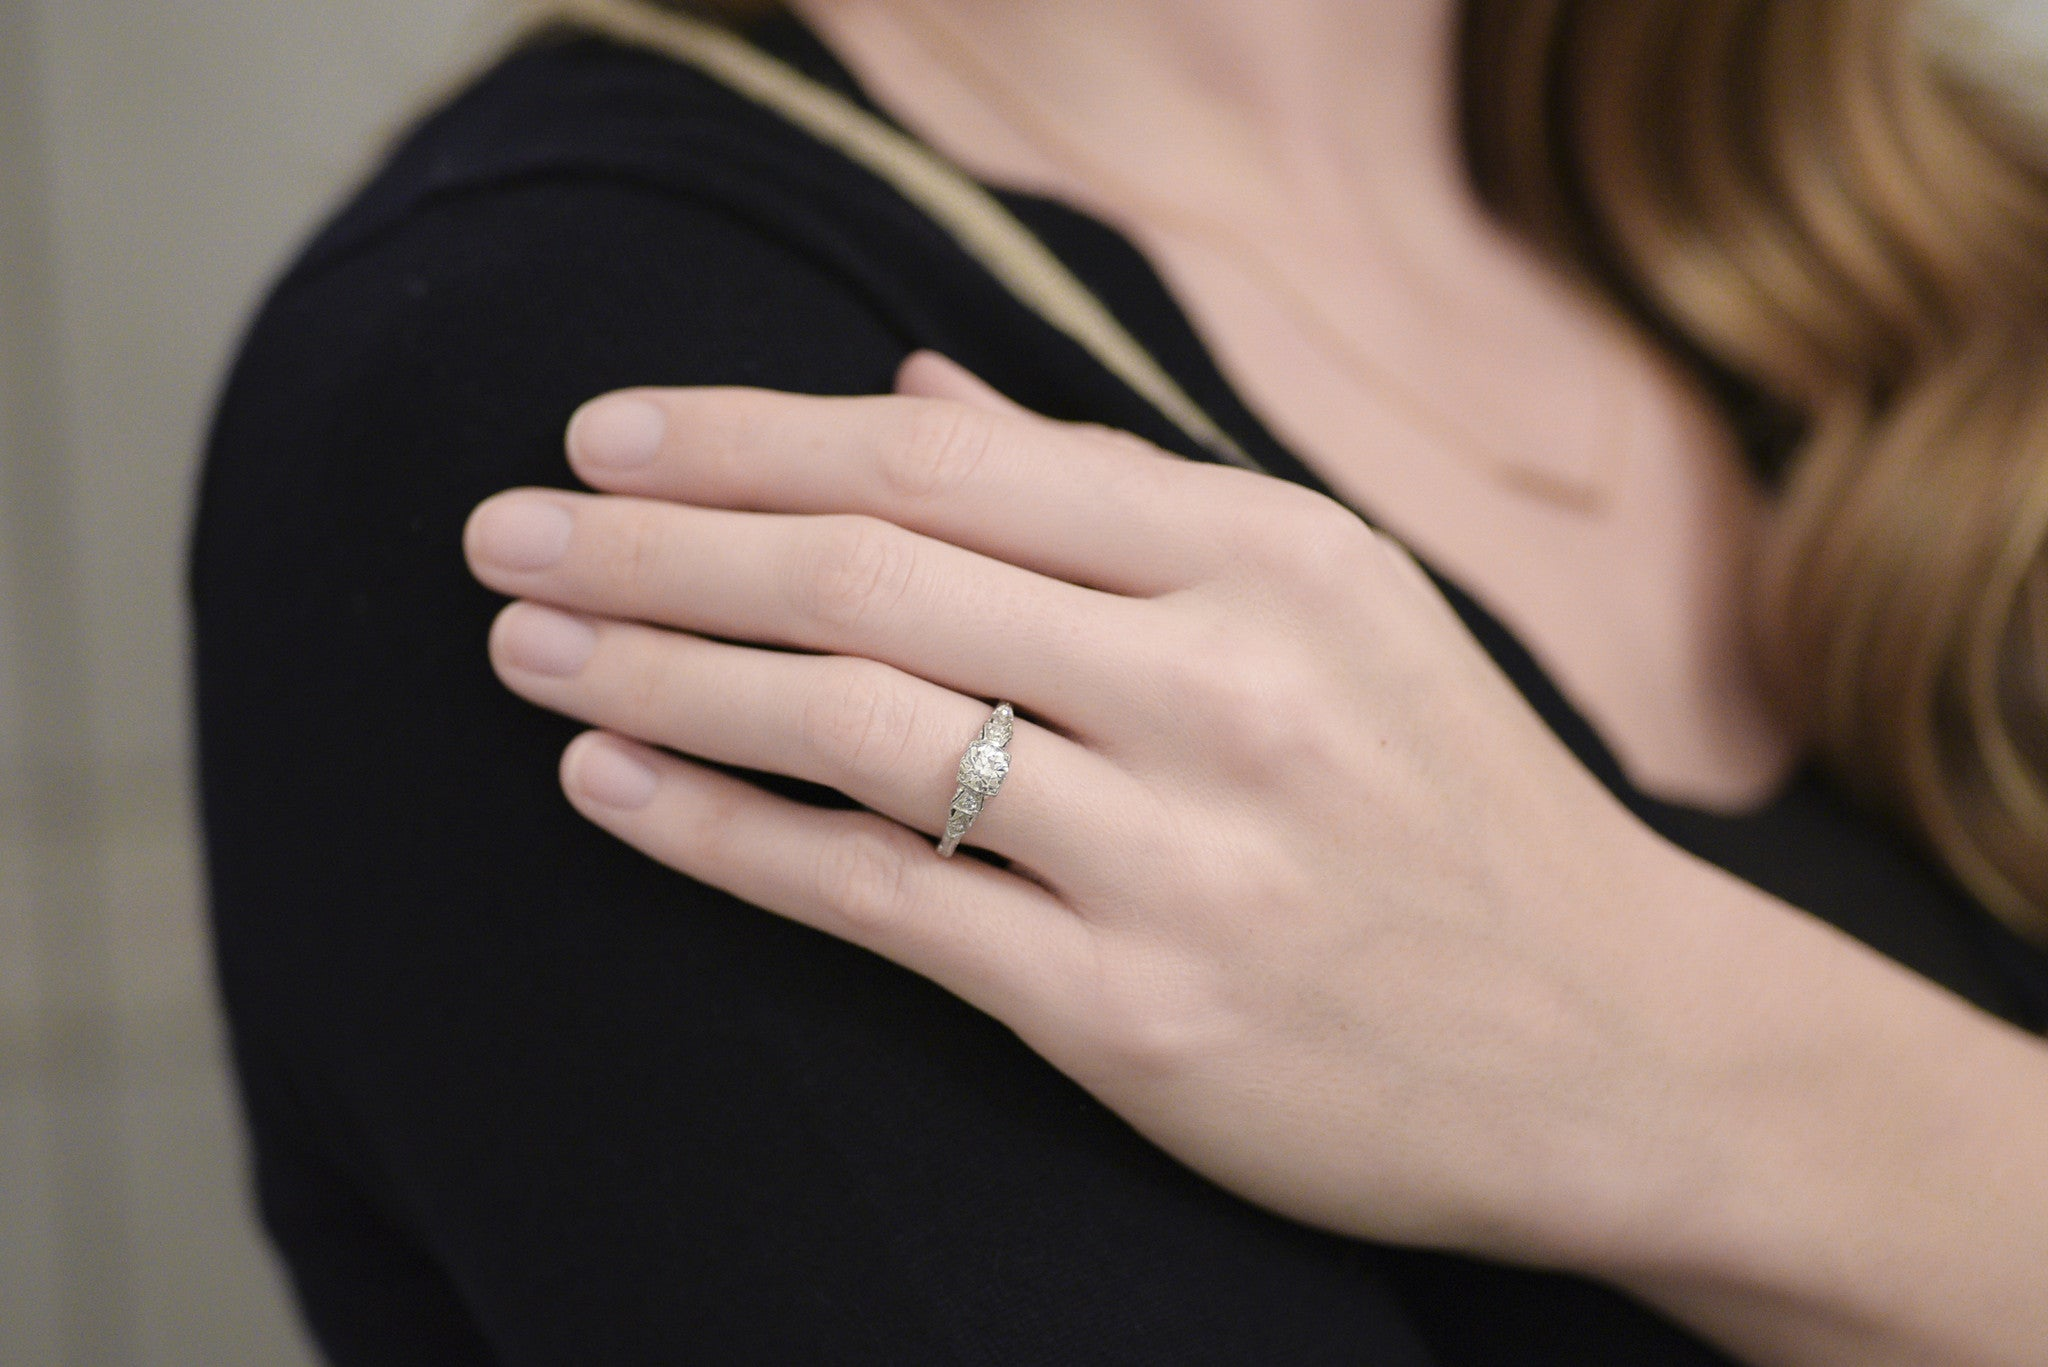 Antique Engagement Ring with French Japonisme Influences and ...